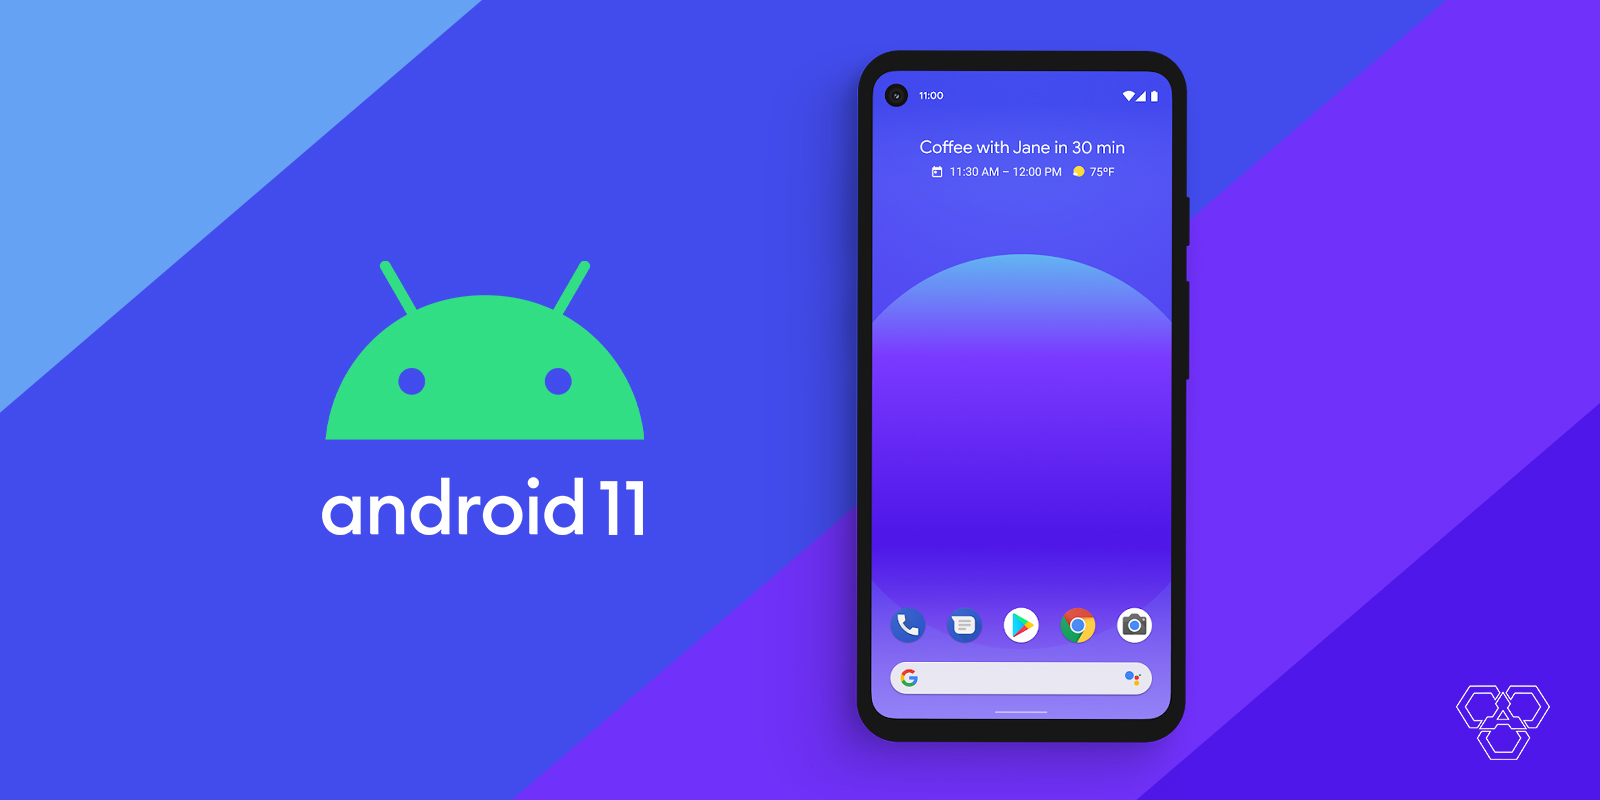 Android 11: Chat bubbles, new features, privacy enhancements, and more